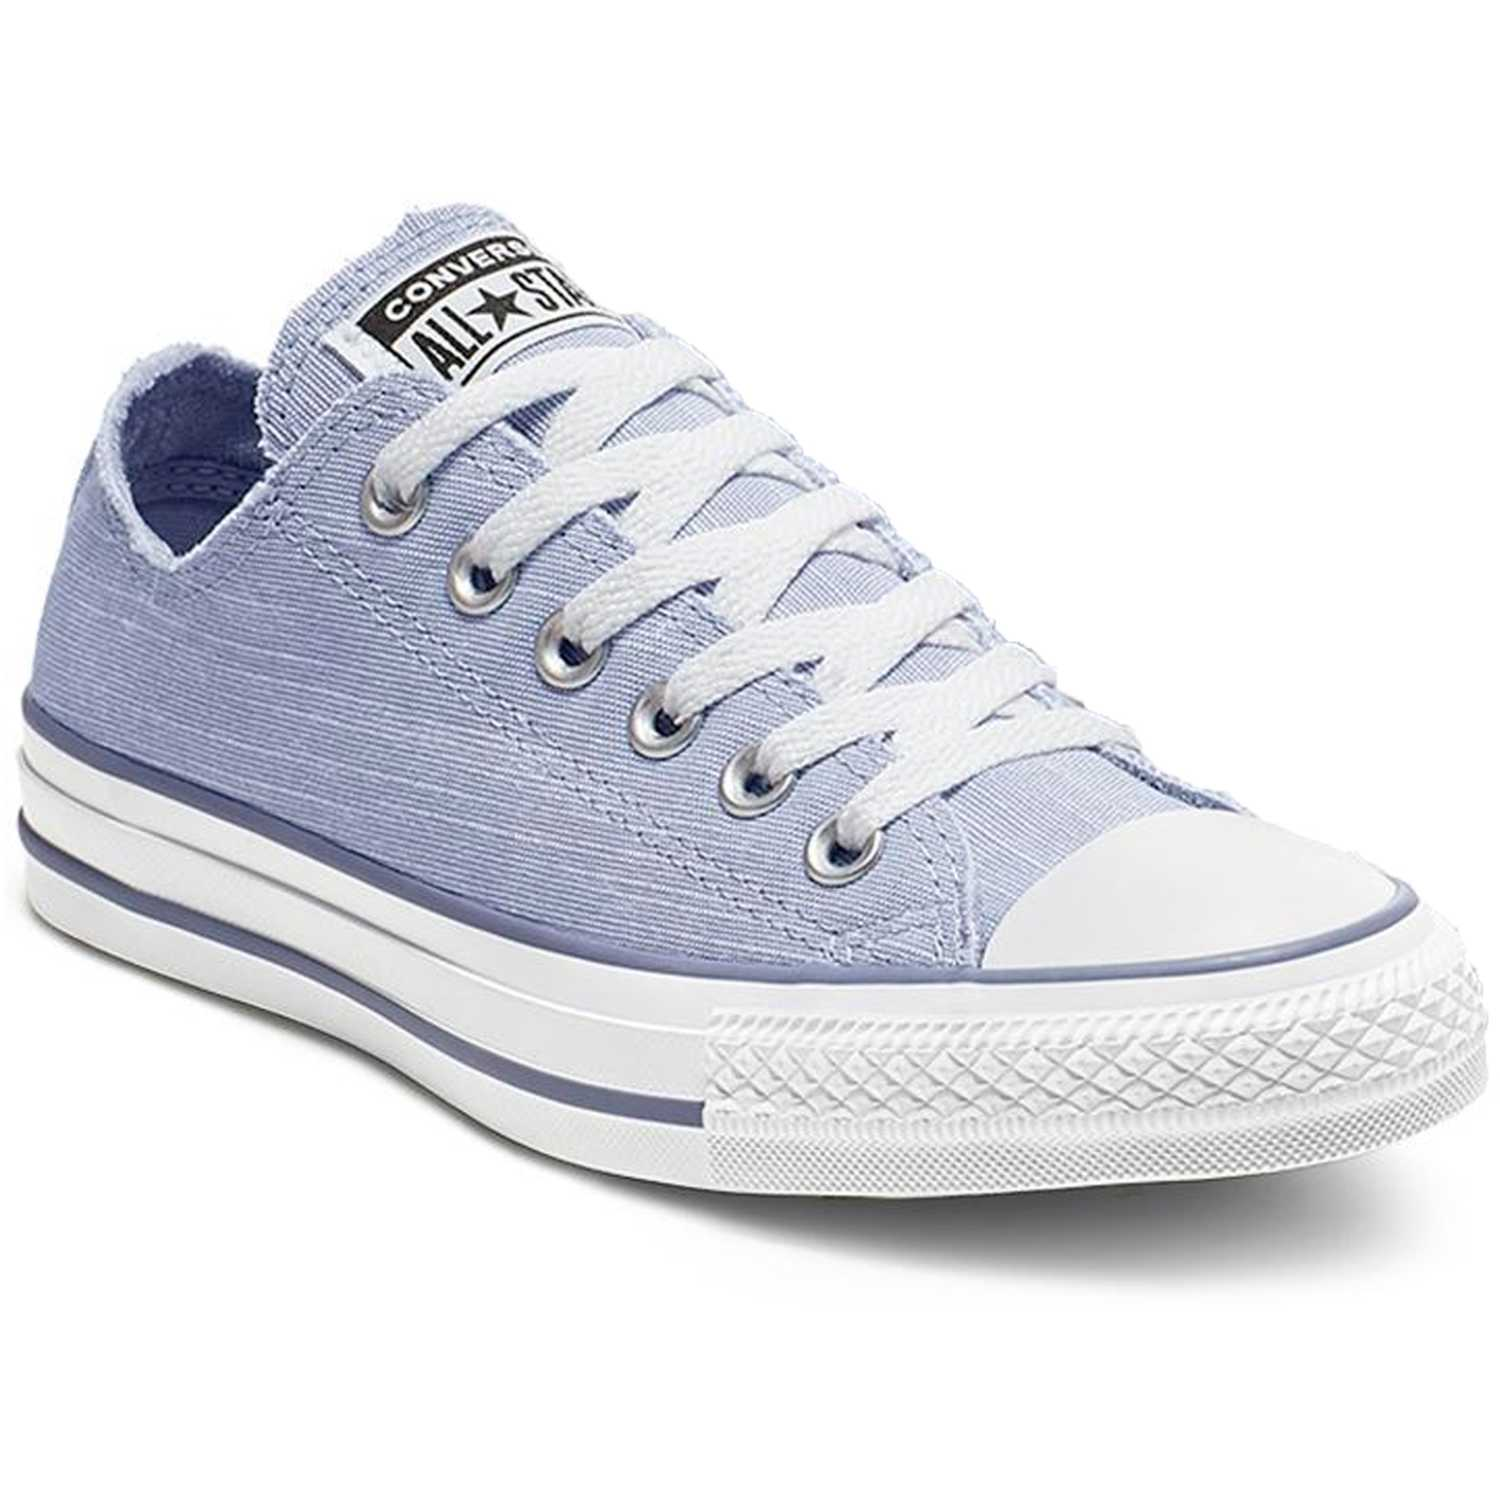 Converse chuck taylor all star frayed lines ox Celeste Walking